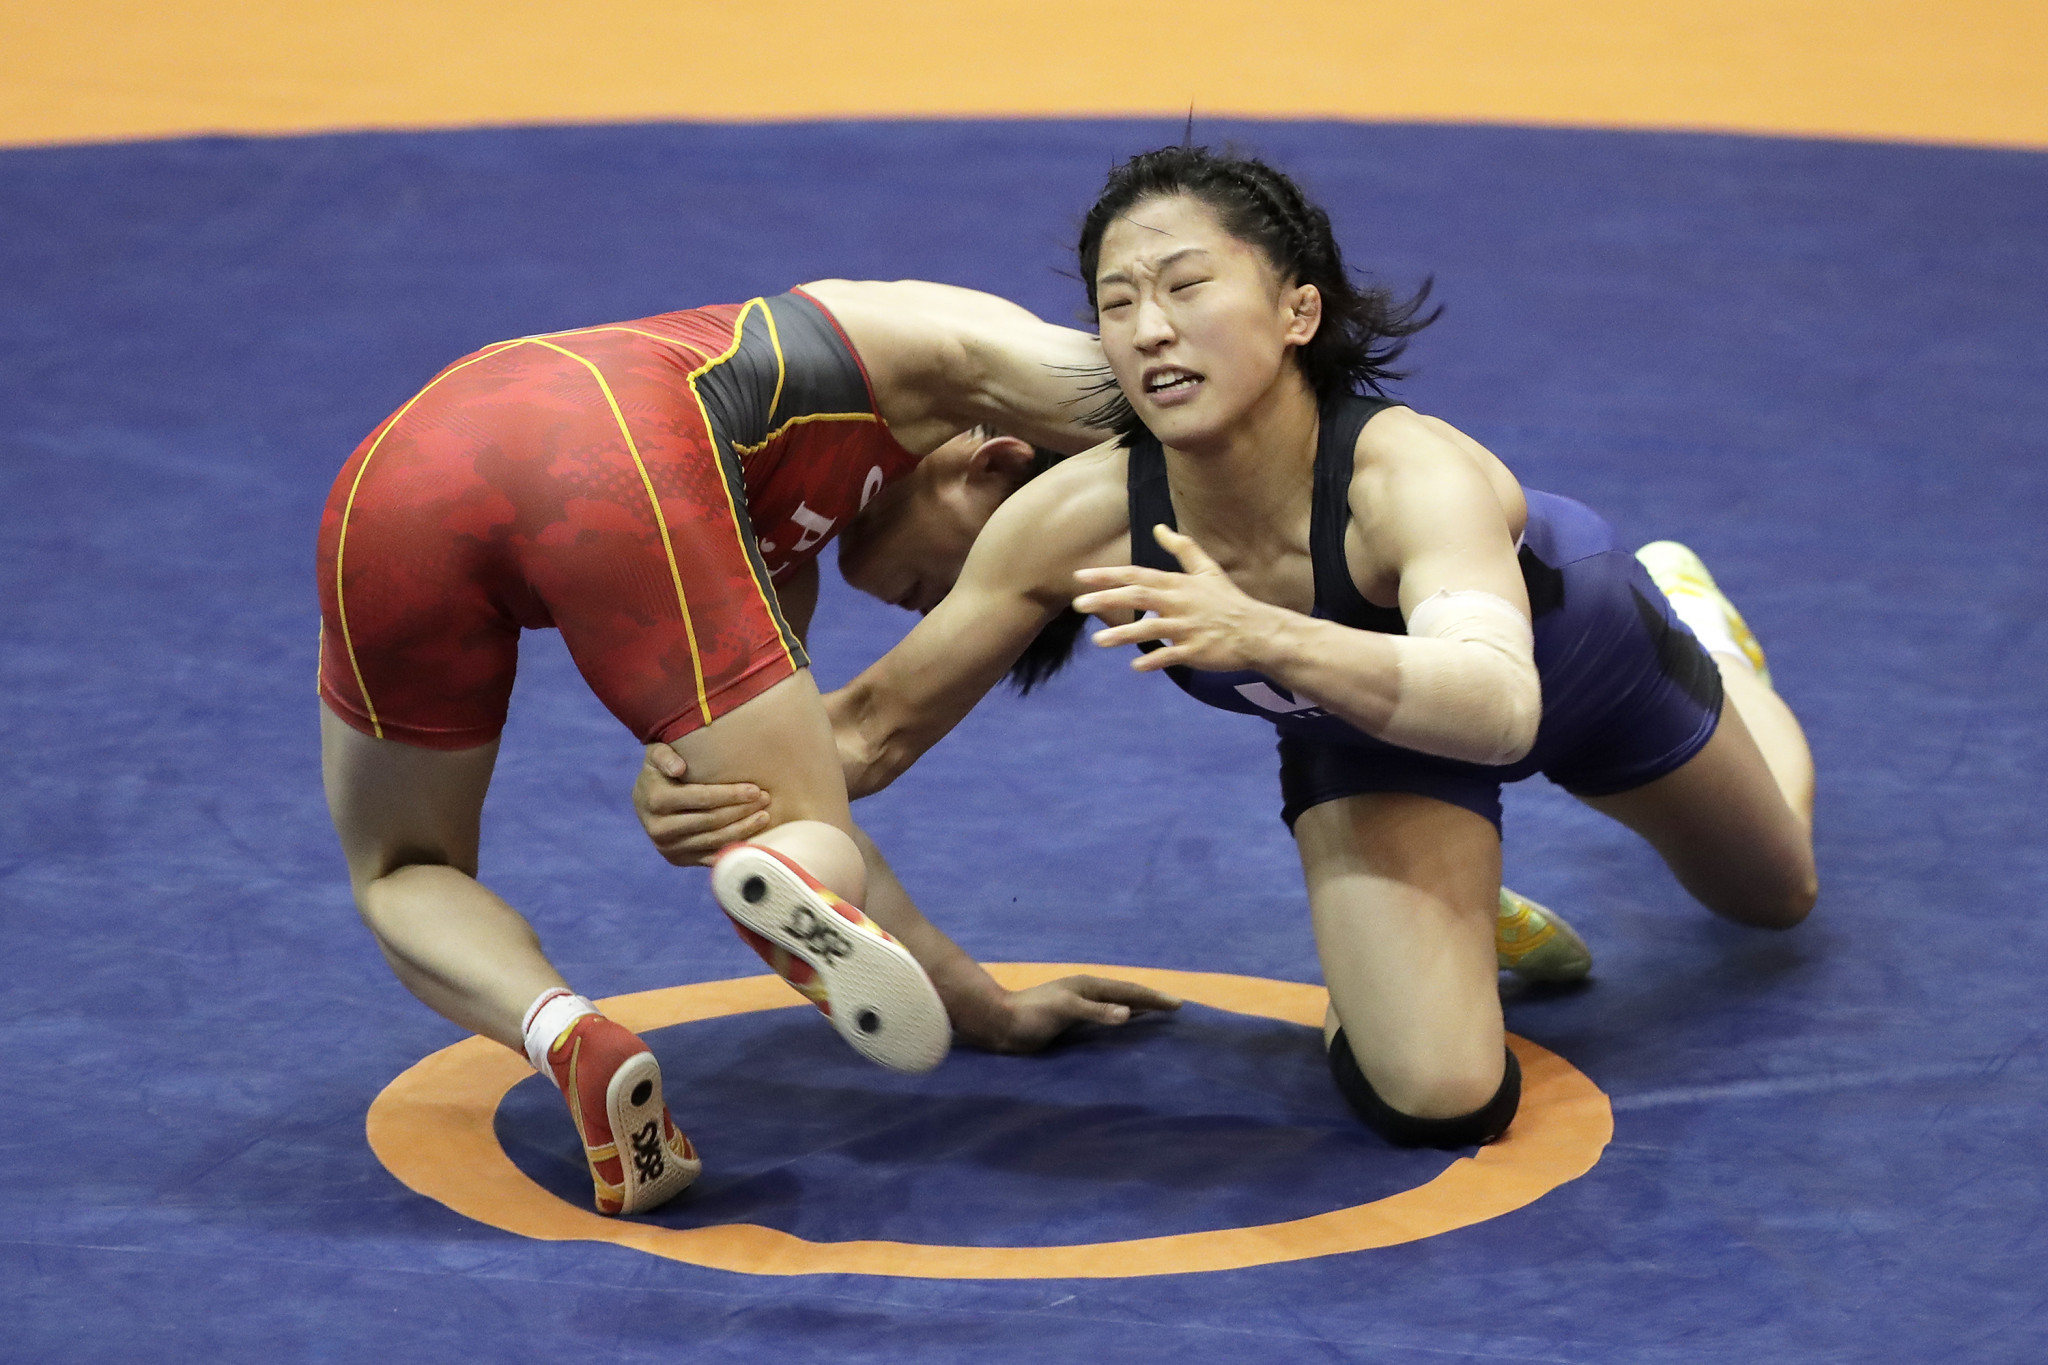 Yui Susaki of Japan sealed a seventh title at the UWW UWW World Junior Championships in Tallinn ©Getty Images